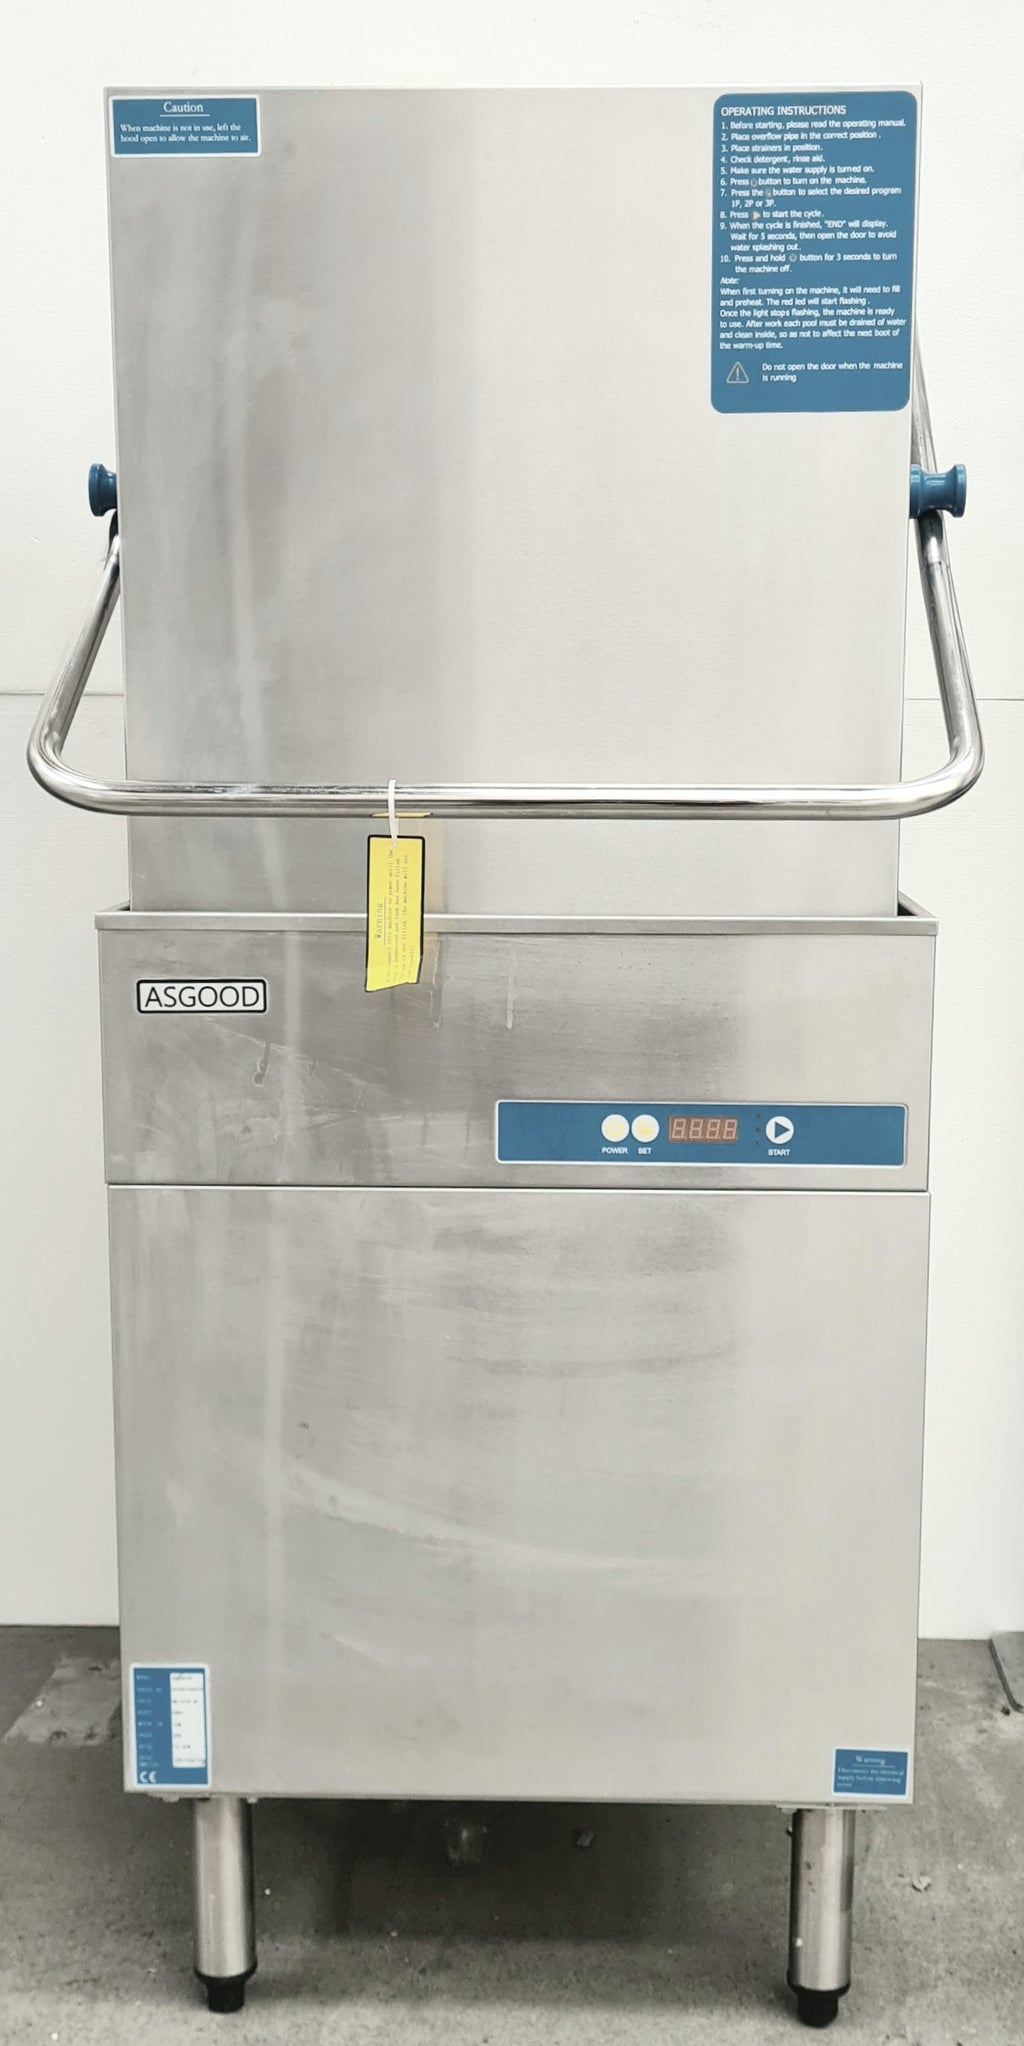 Asgood AXE601D Passthrough Dishwasher (2)